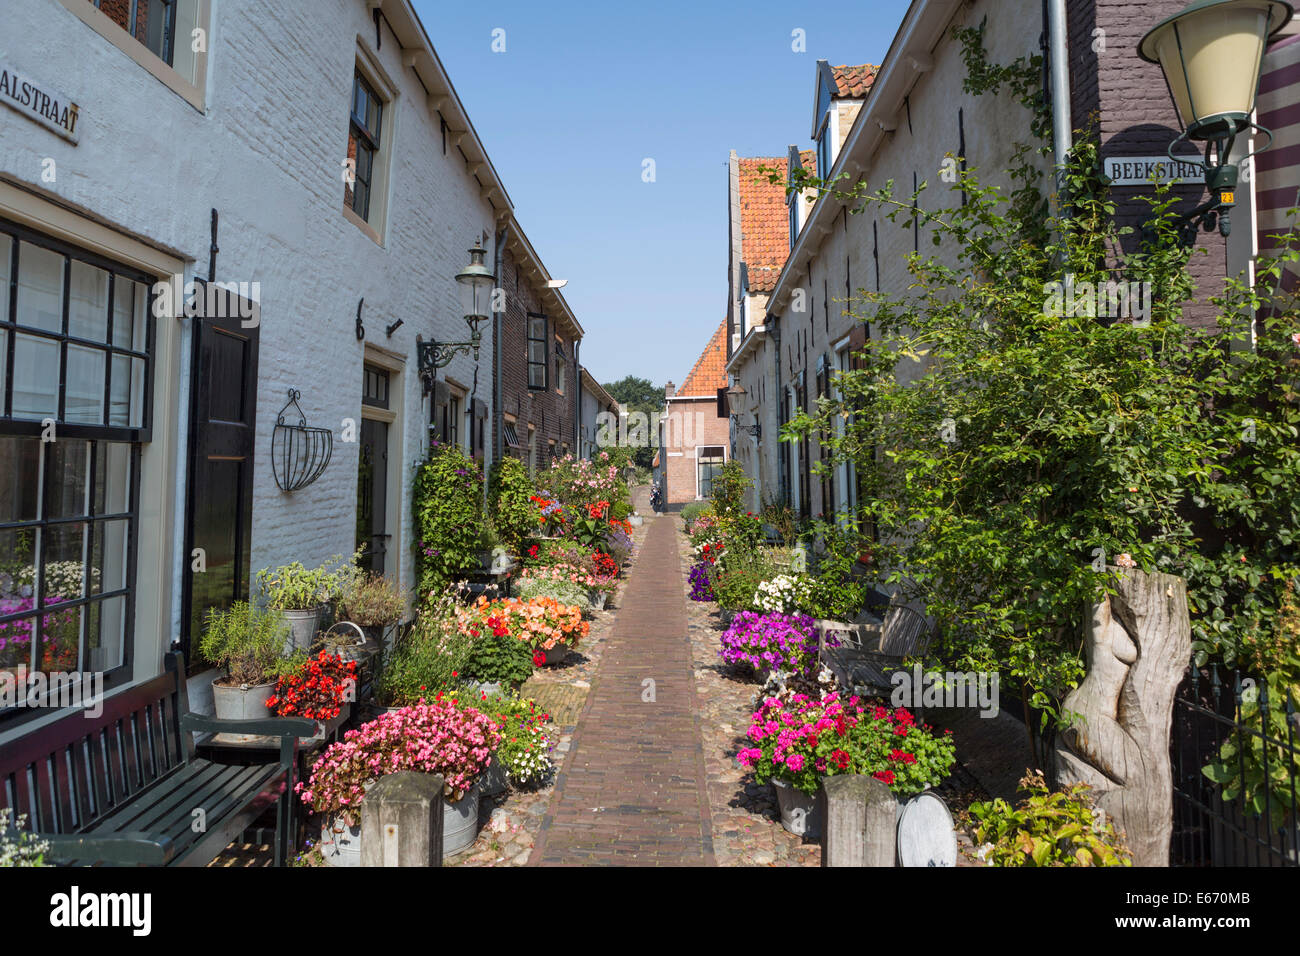 Romantic street with flowers in the old Hanseatic city 'Elburg' in the Netherlands - Stock Image